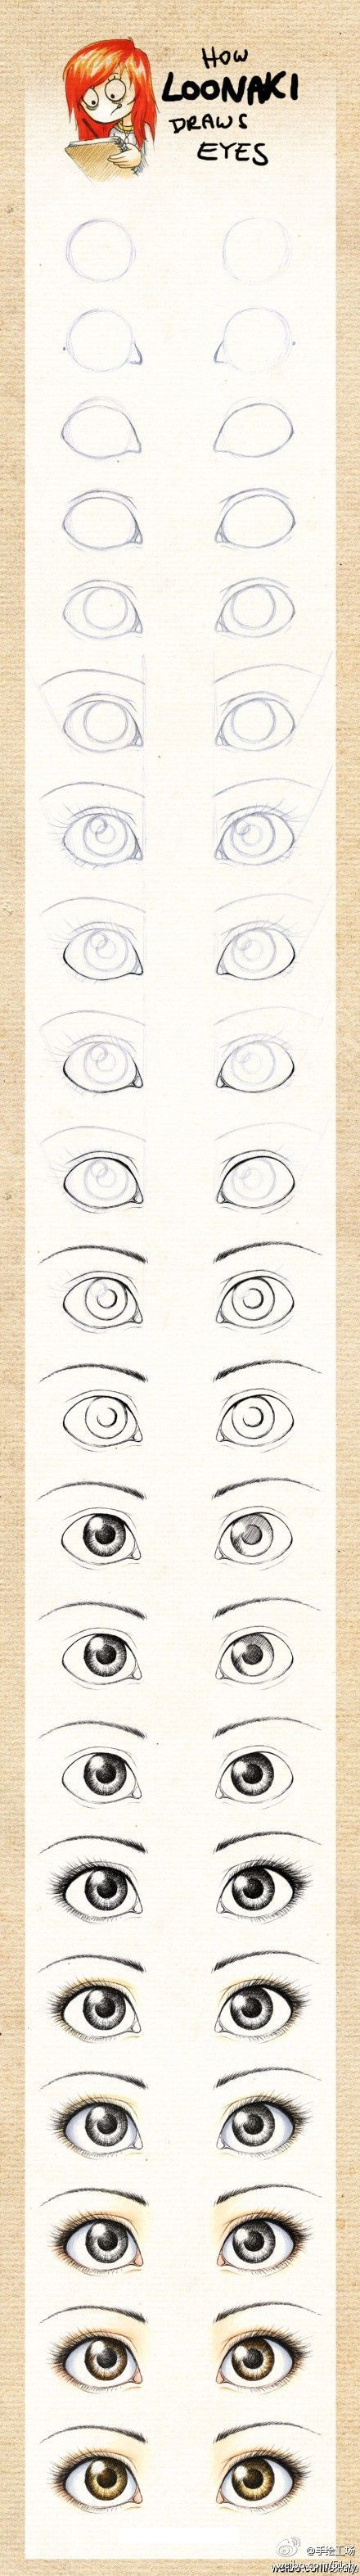 How to draw eyes, step by step.: